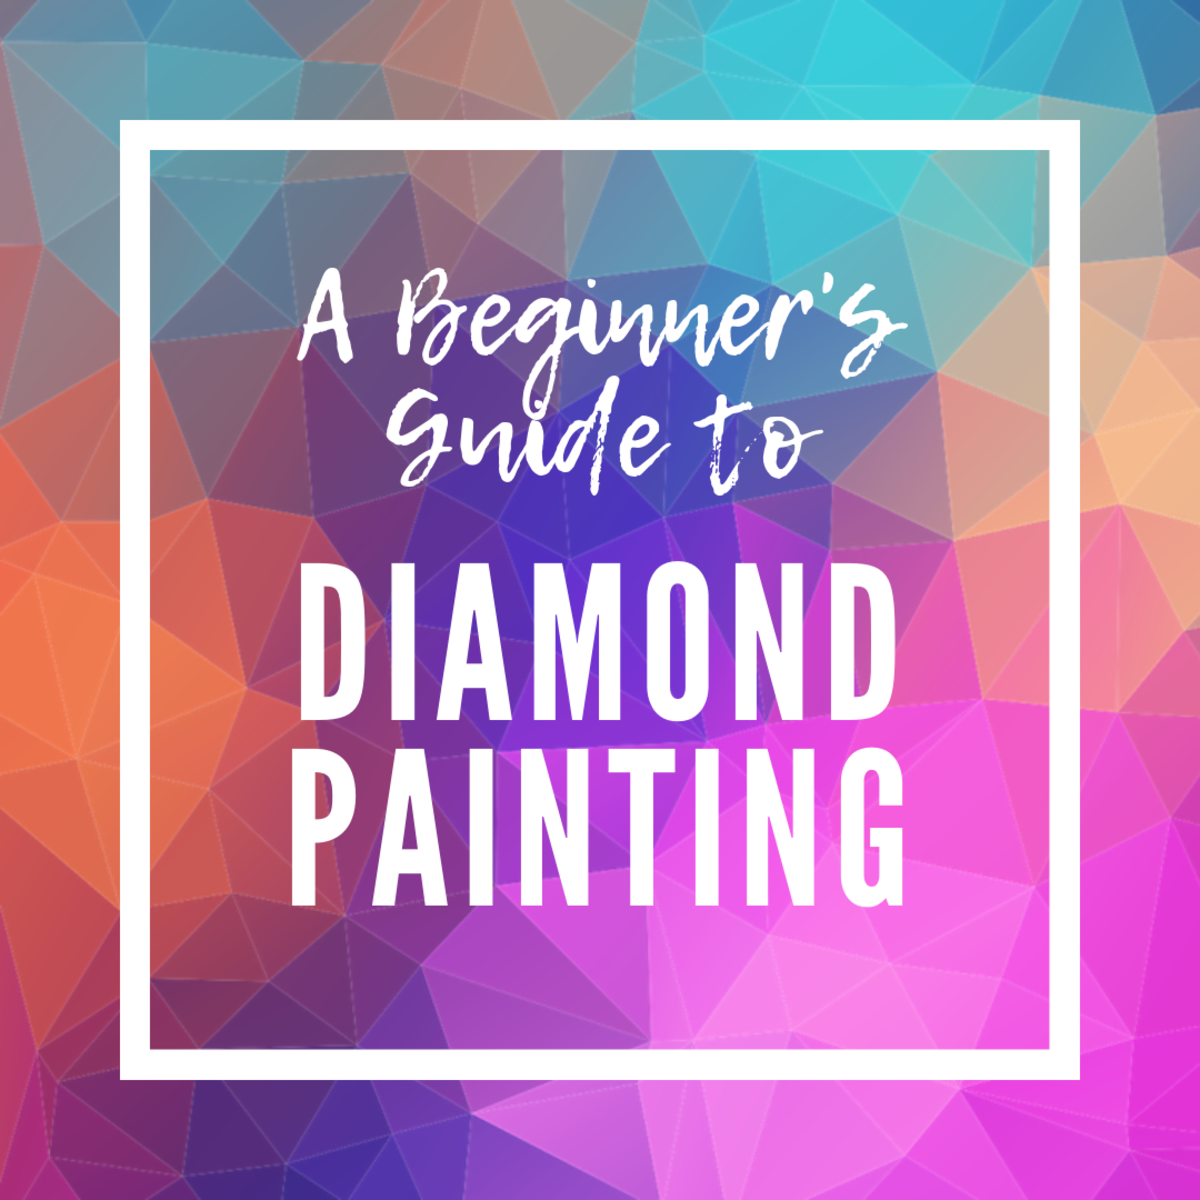 Diamond painting is an easy, affordable hobby for artists and crafters.